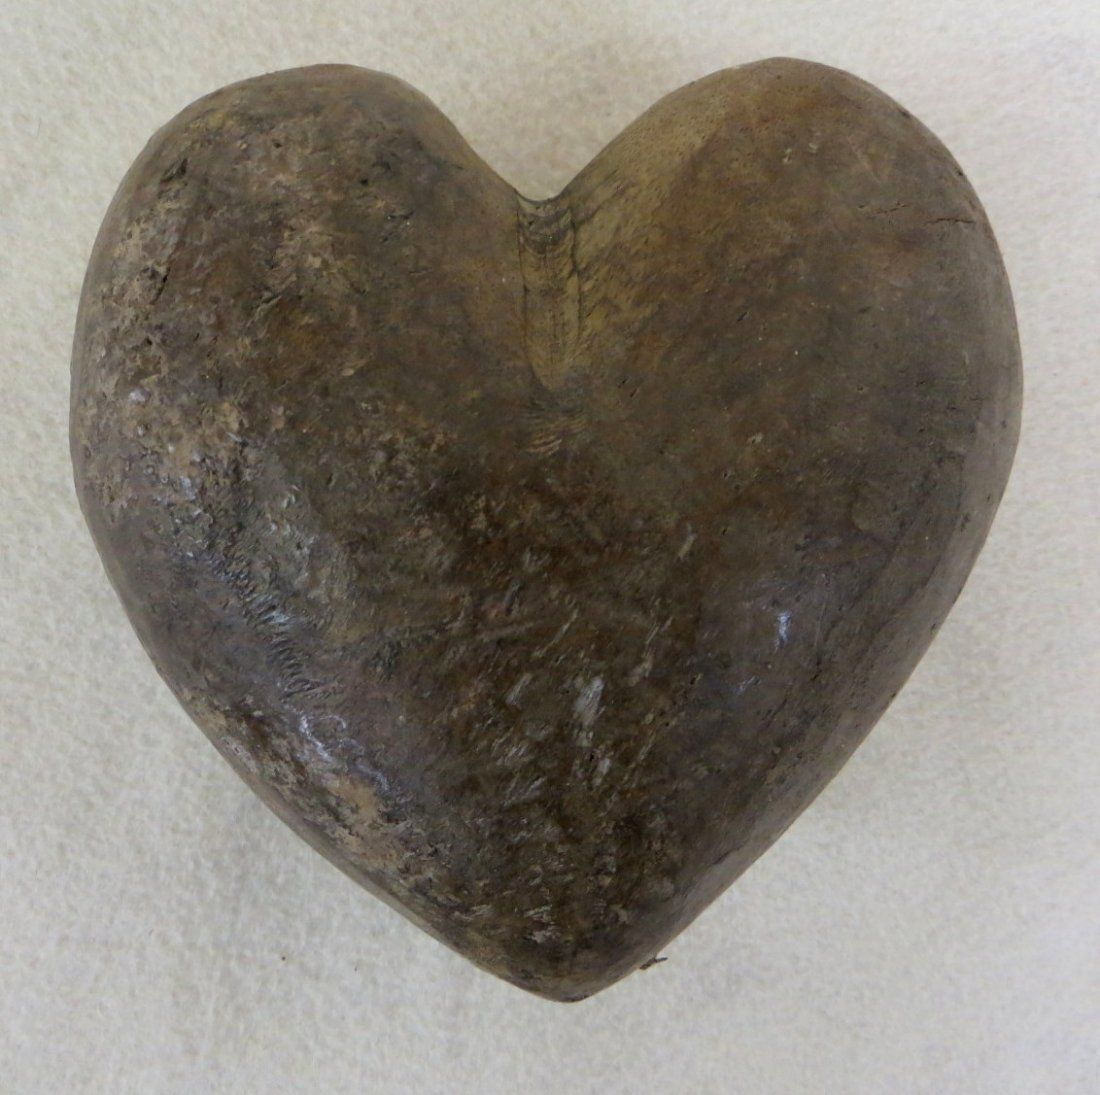 Hand Carved Wooden Heart Probably Mid 19th Century Jan 04 2014 Hyde Park Country Auctions In Ny Wooden Hearts Hand Carved Carving